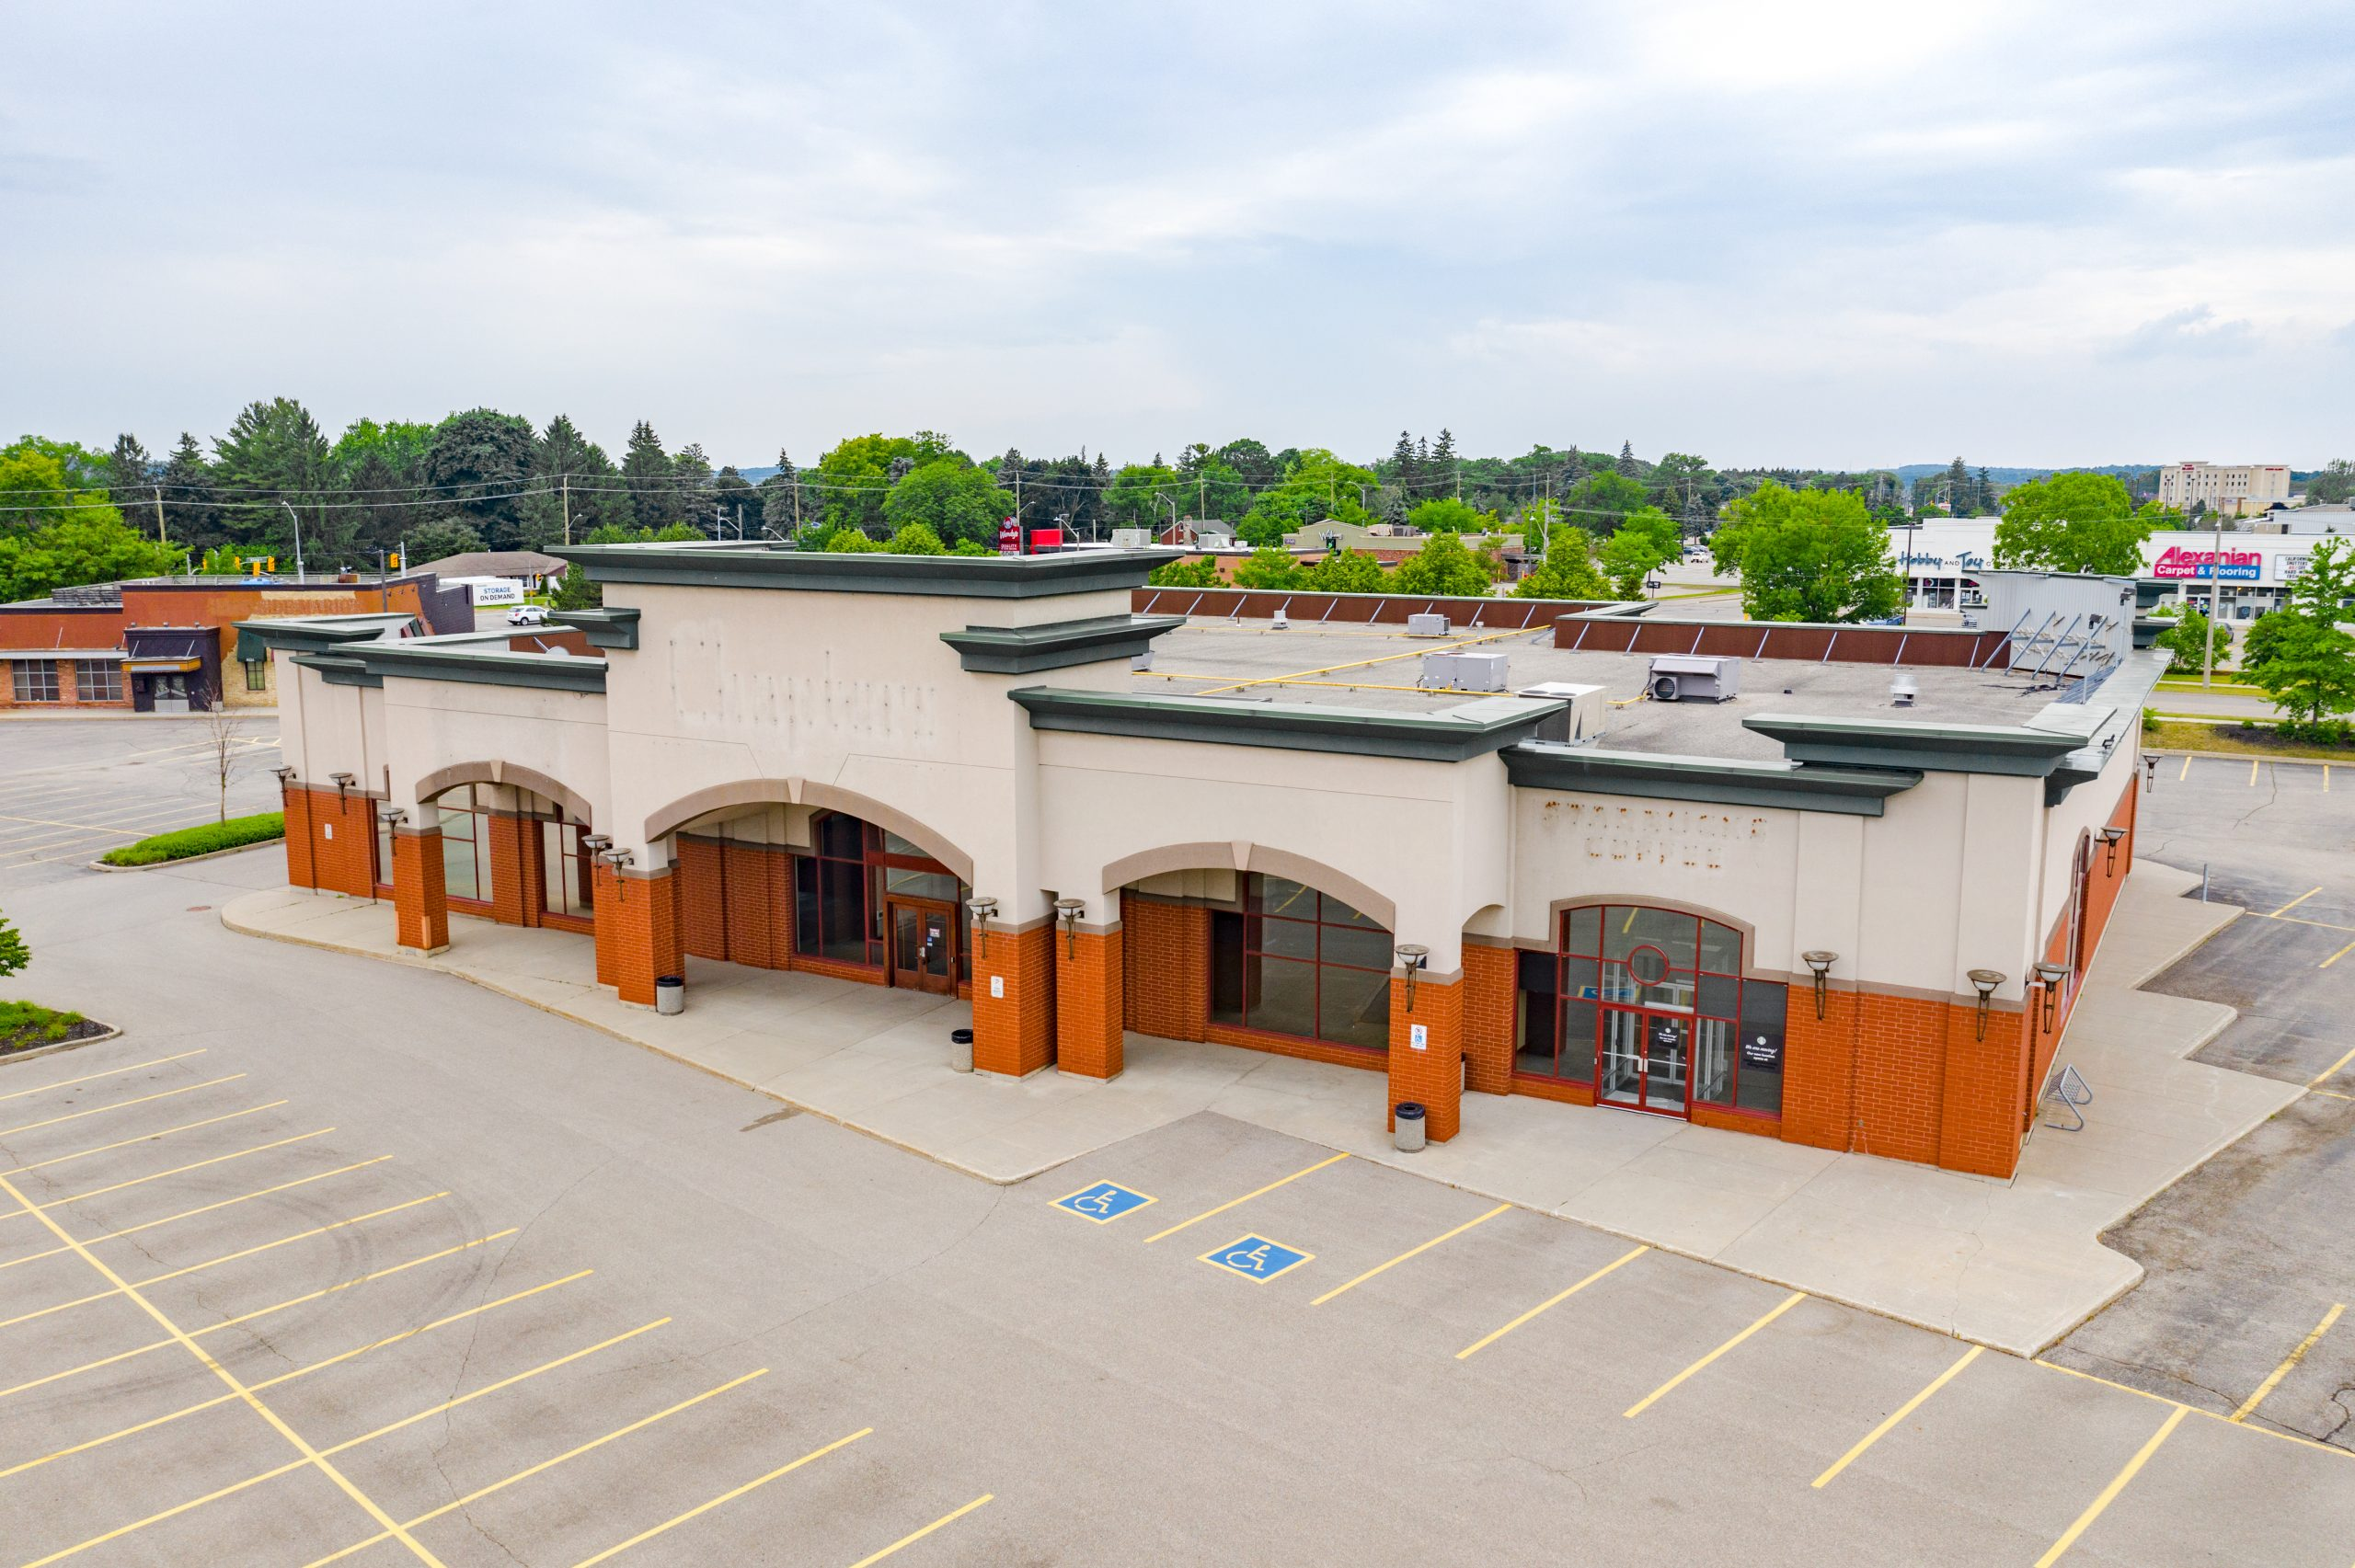 135 Gateway Park Drive, Kitchener | Free Standing Building Available For Lease